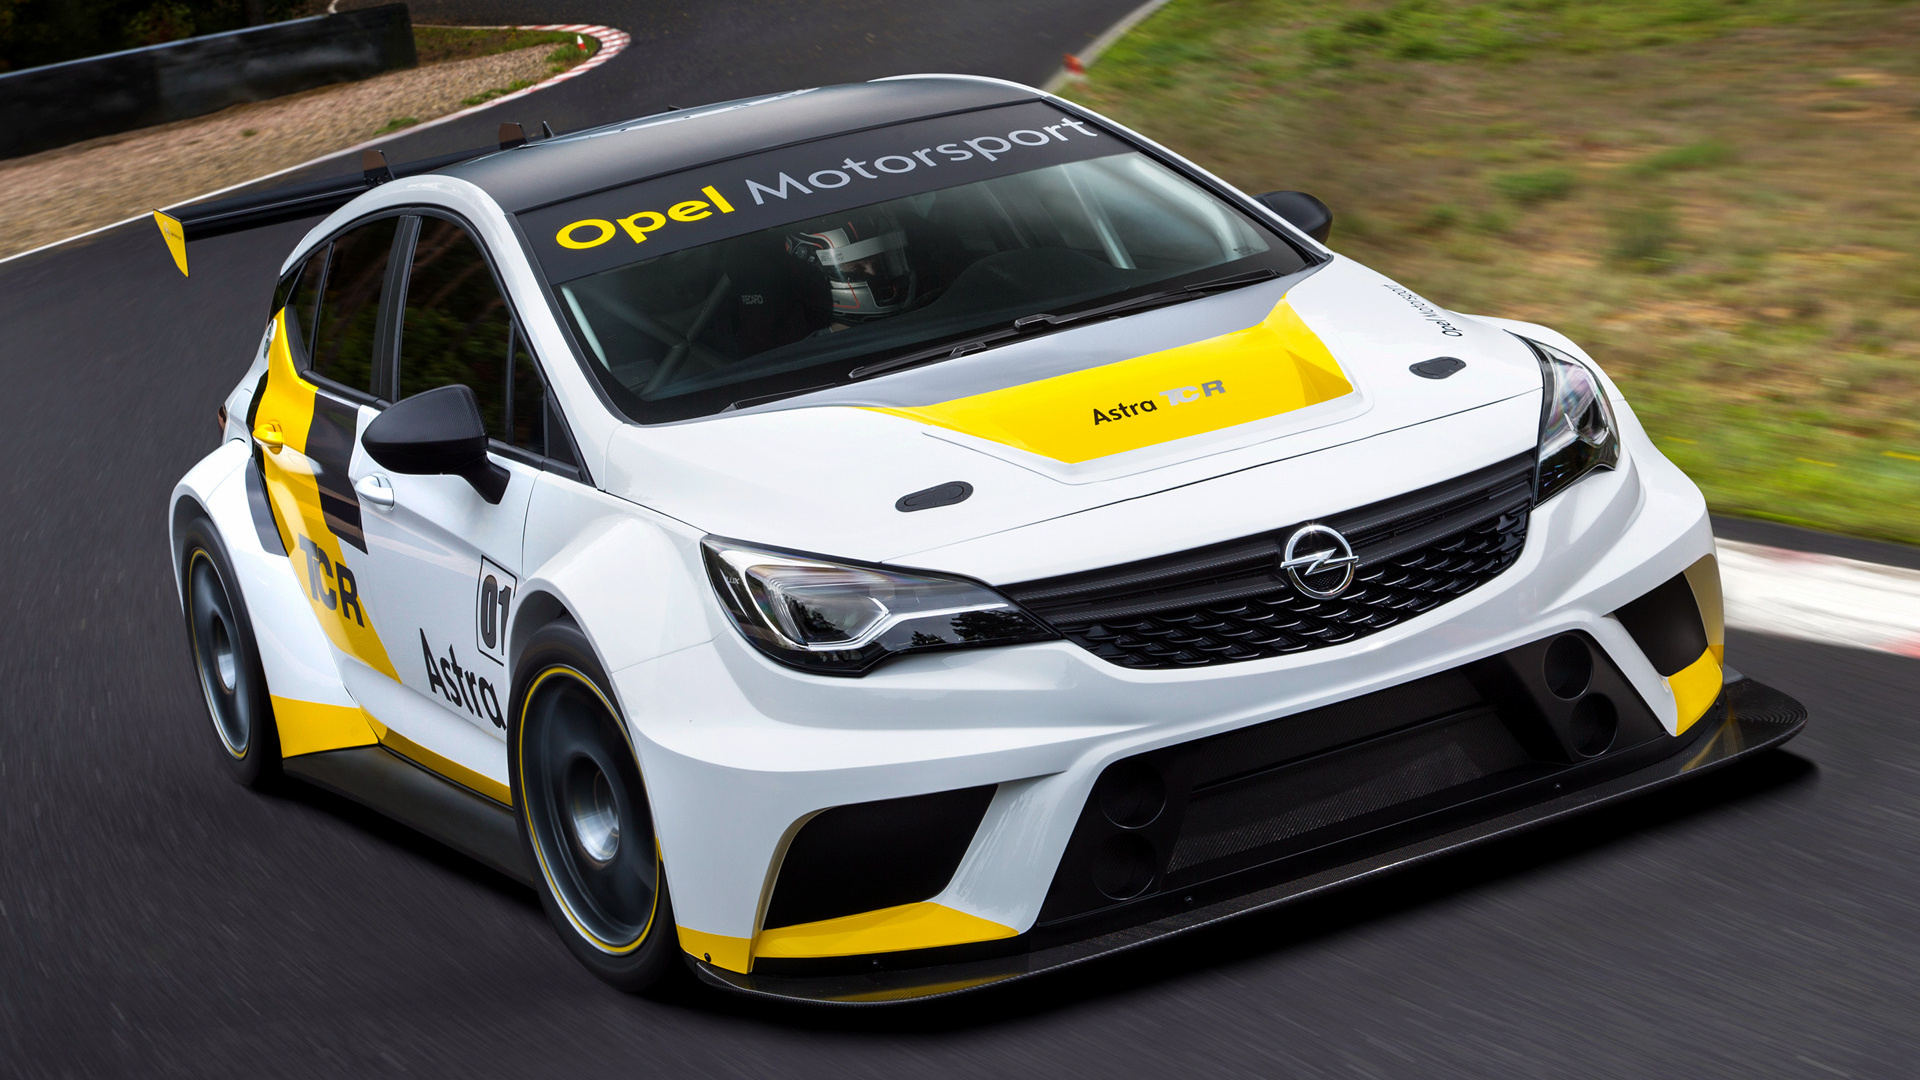 Audi Sports Car Wallpaper 2016 Opel Astra Tcr Wallpapers And Hd Images Car Pixel